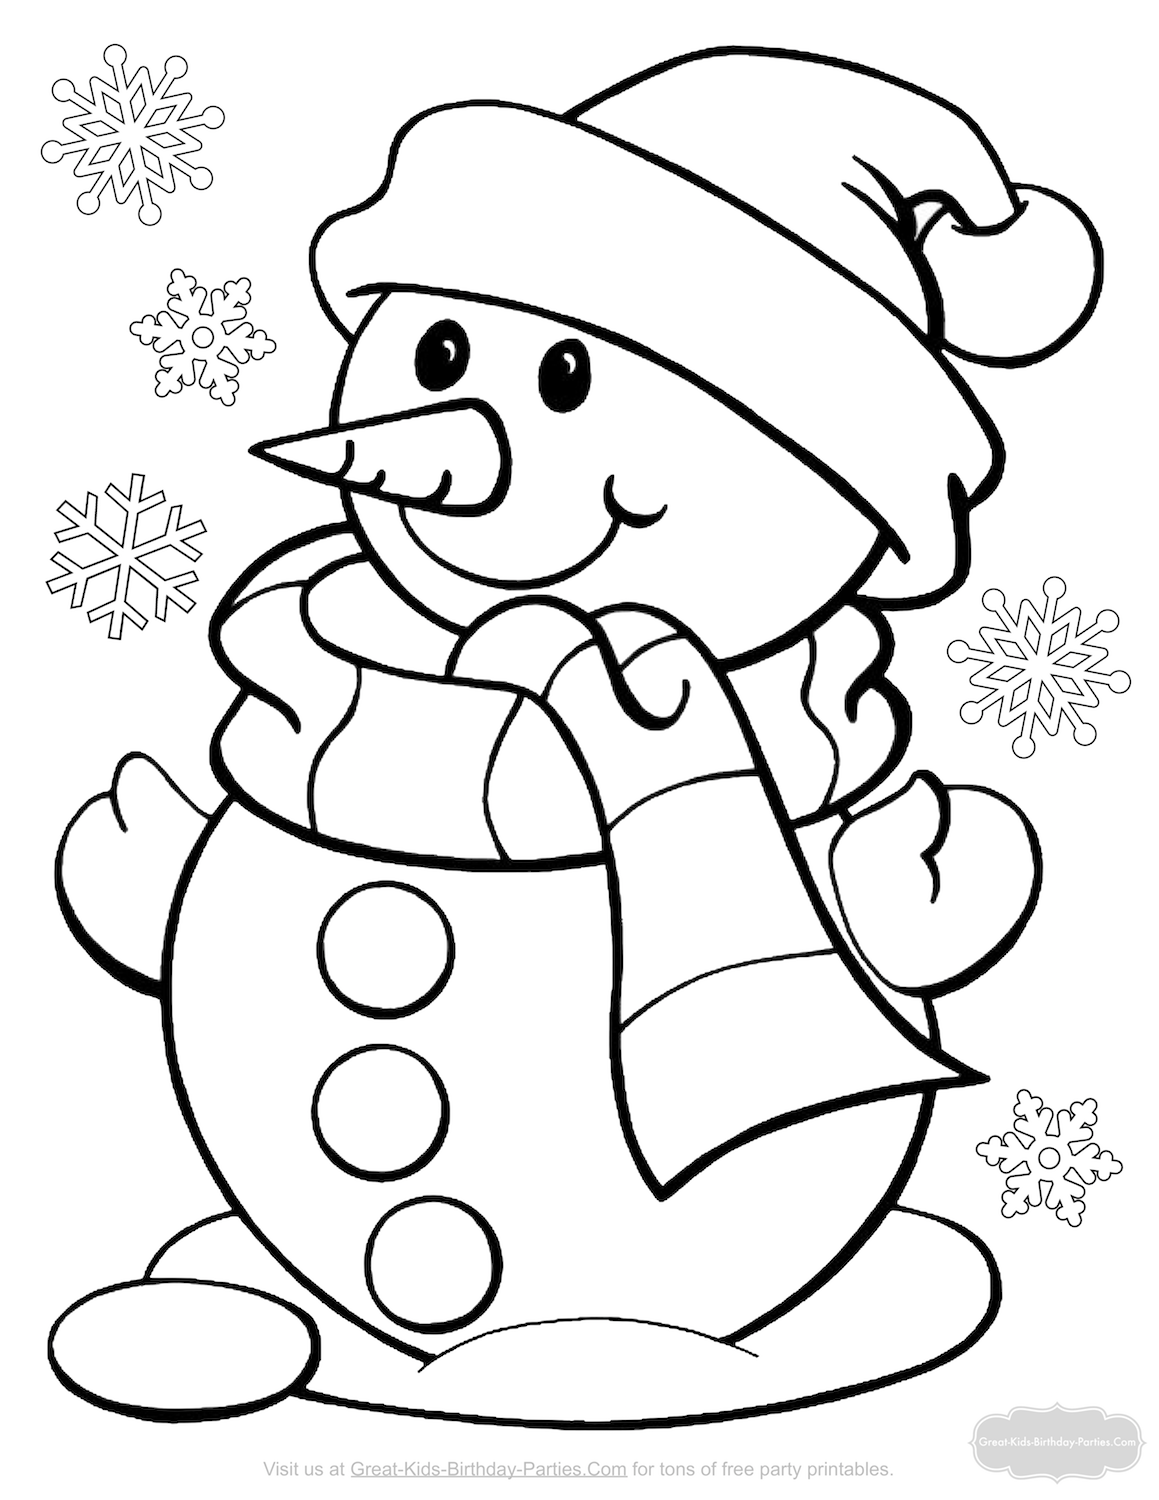 Christmas Coloring Pages Snowman Coloring Pages Christmas Coloring Sheets Christmas Coloring Pages